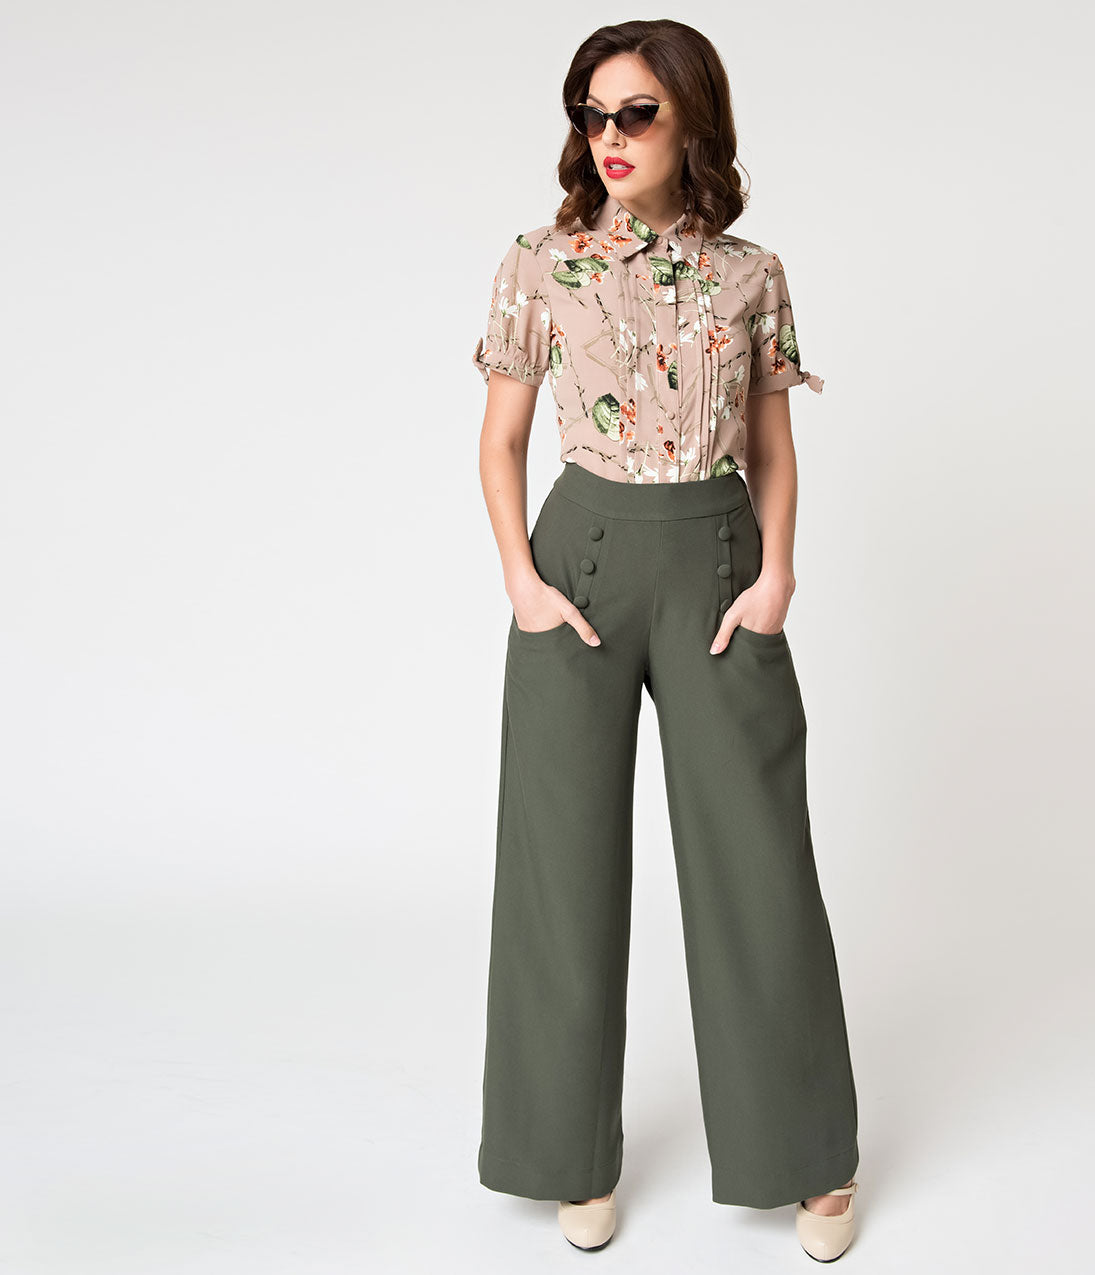 1940s Swing Pants & Sailor Trousers- Wide Leg, High Waist Unique Vintage 1940S Style Moss Green High Waist Sailor Ginger Pants $64.00 AT vintagedancer.com